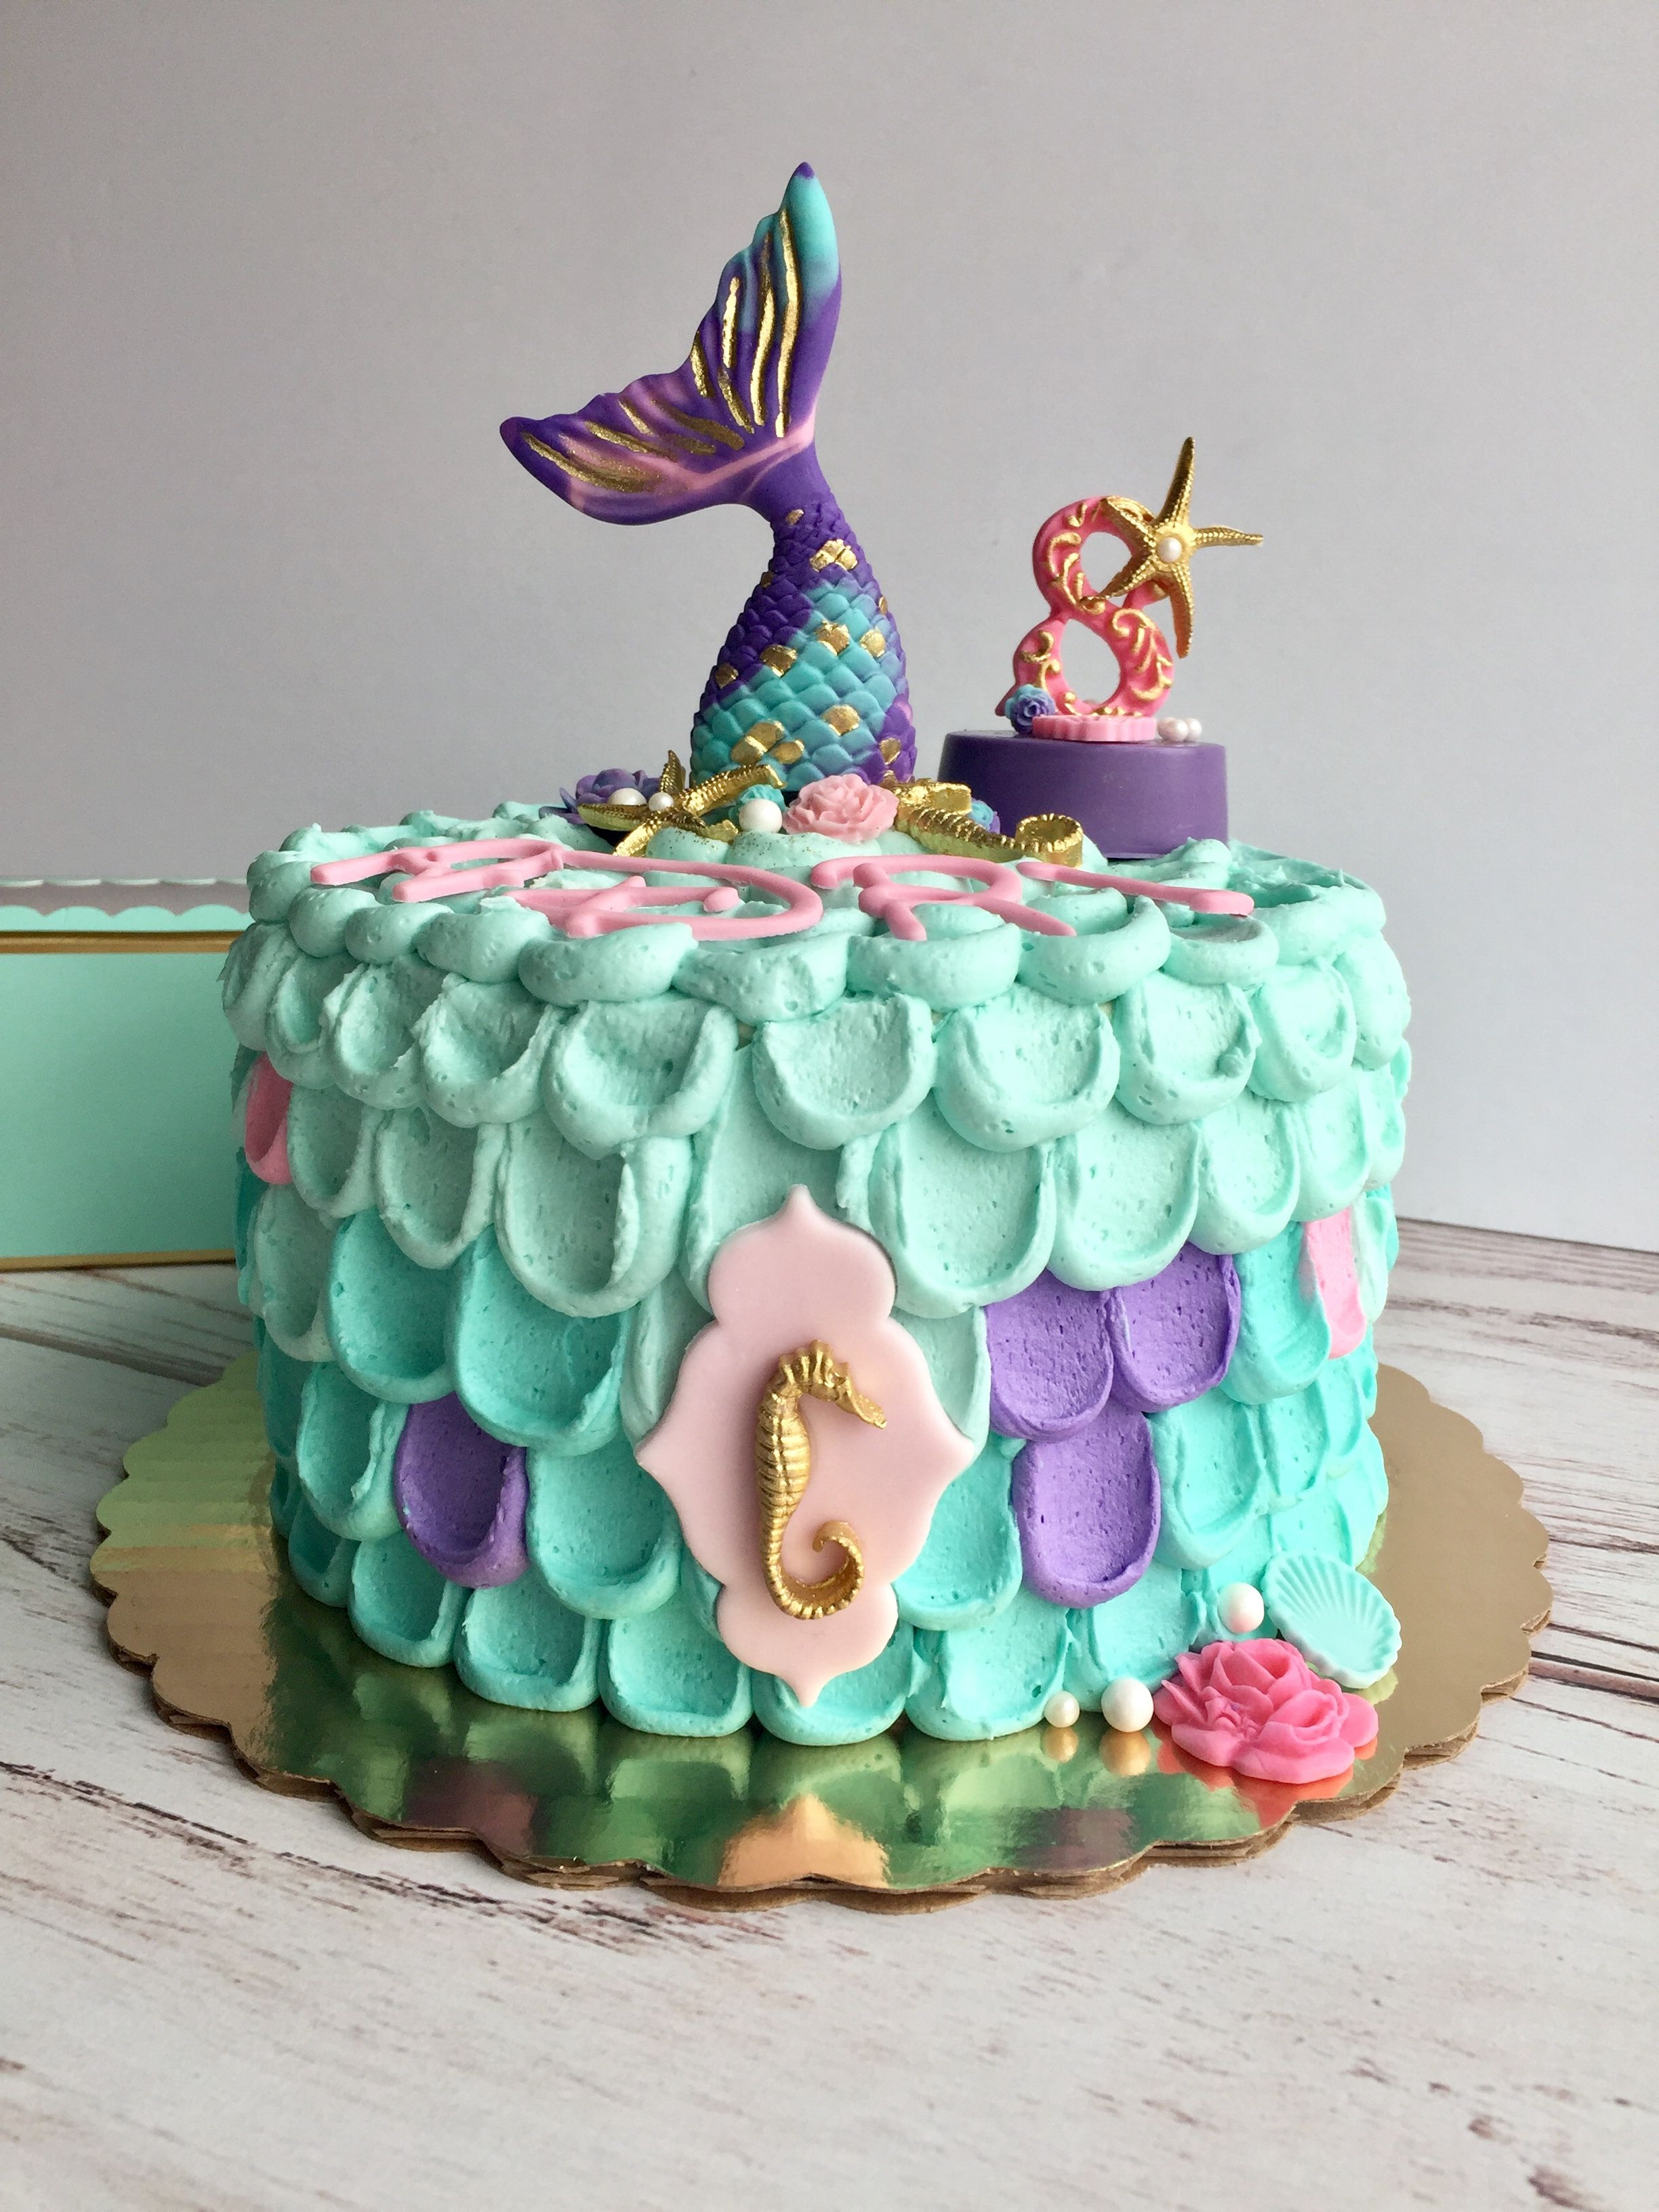 Awe Inspiring Mermaid Cake For 8 Year Old 9 Year Old Girl Birthday 3 Year Old Funny Birthday Cards Online Alyptdamsfinfo